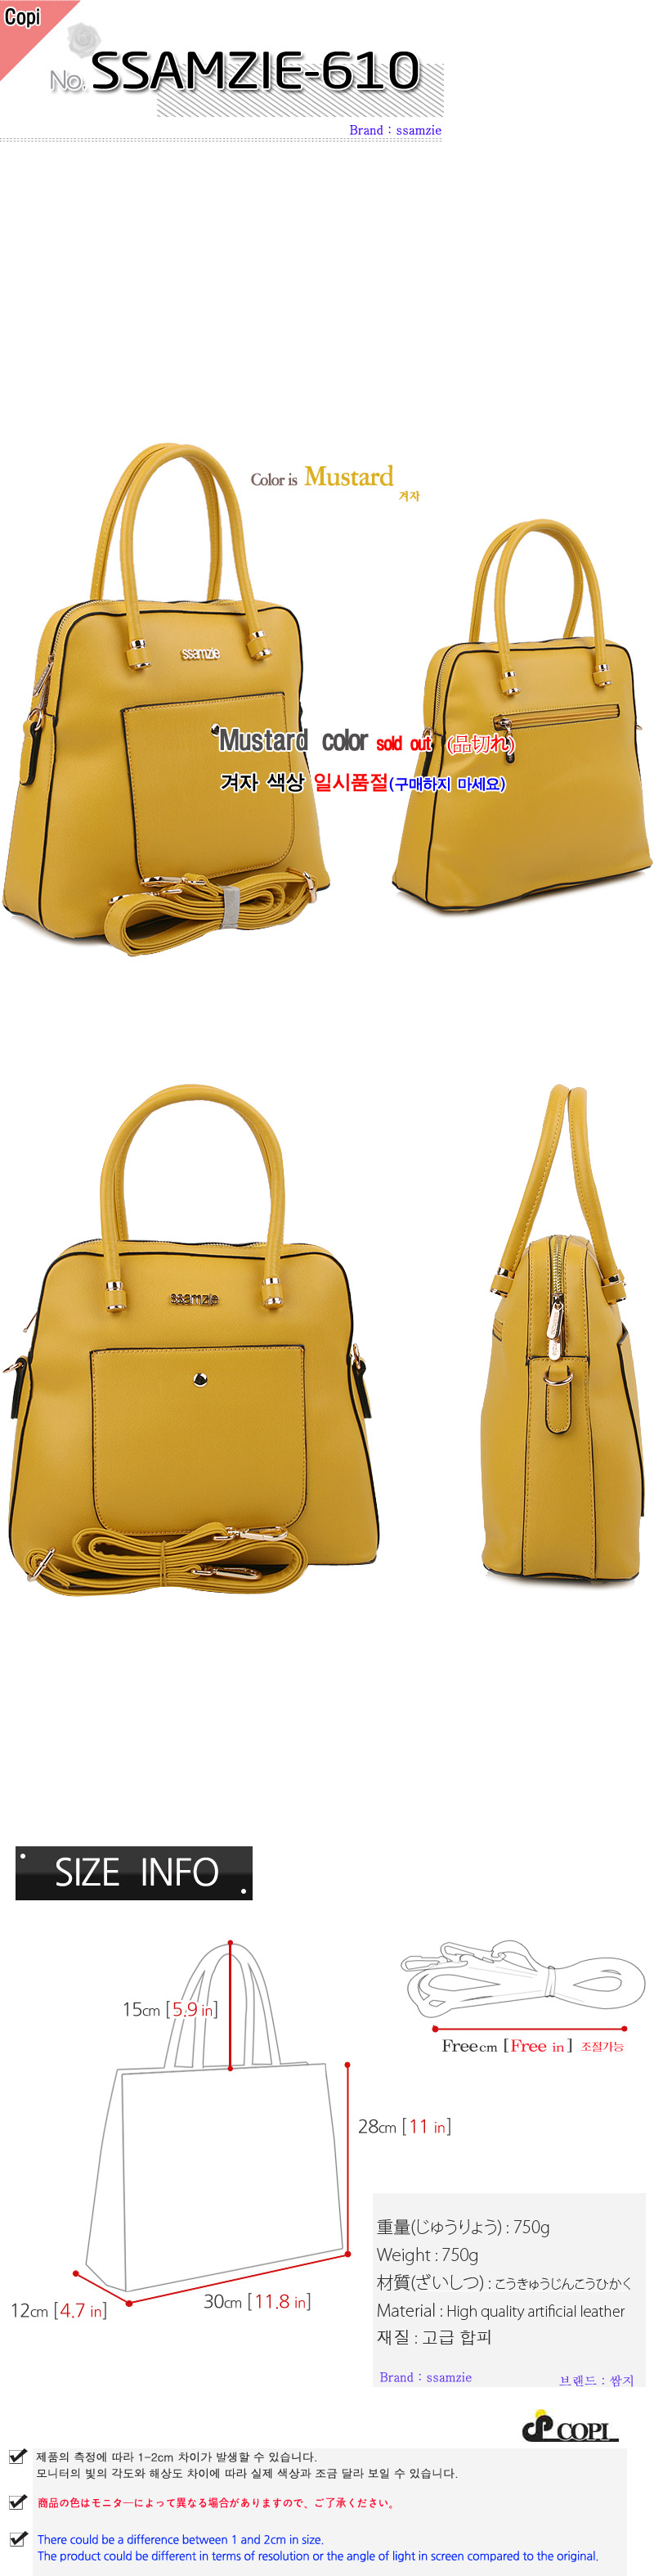 ssamzie handbag no. SSAMZIE-610view